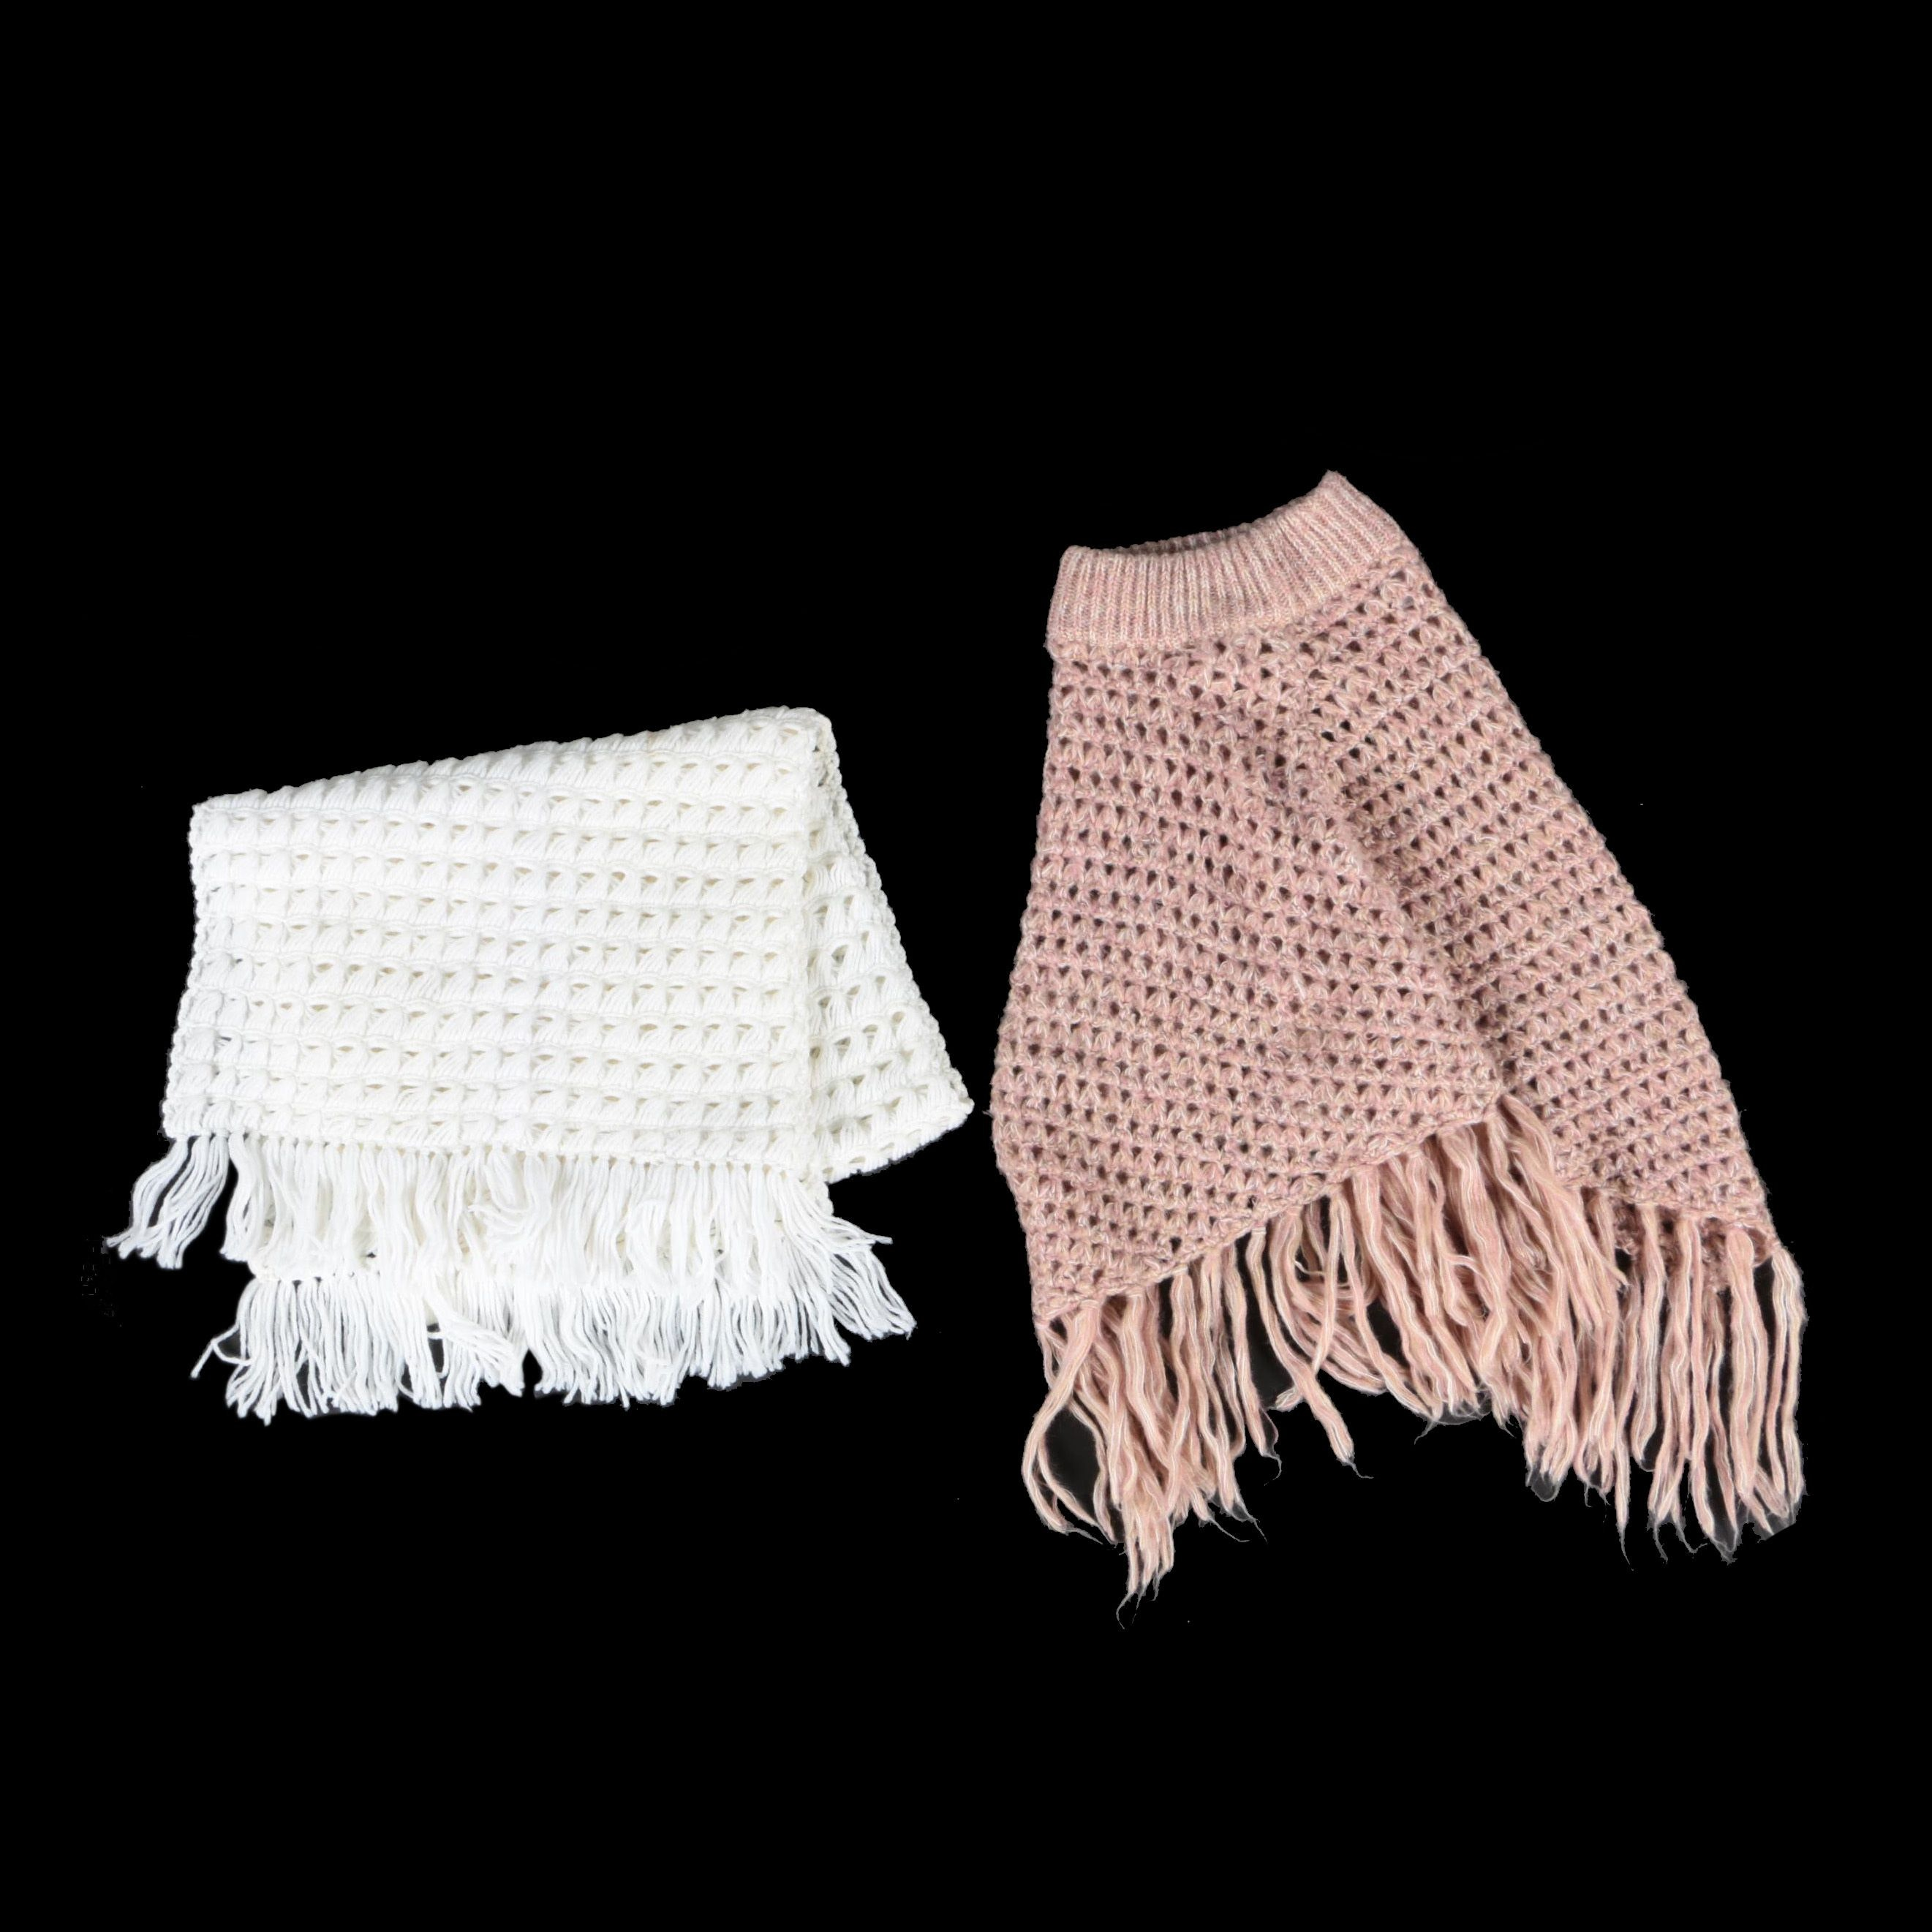 White Crocheted Shawl and Pink Crocheted Poncho